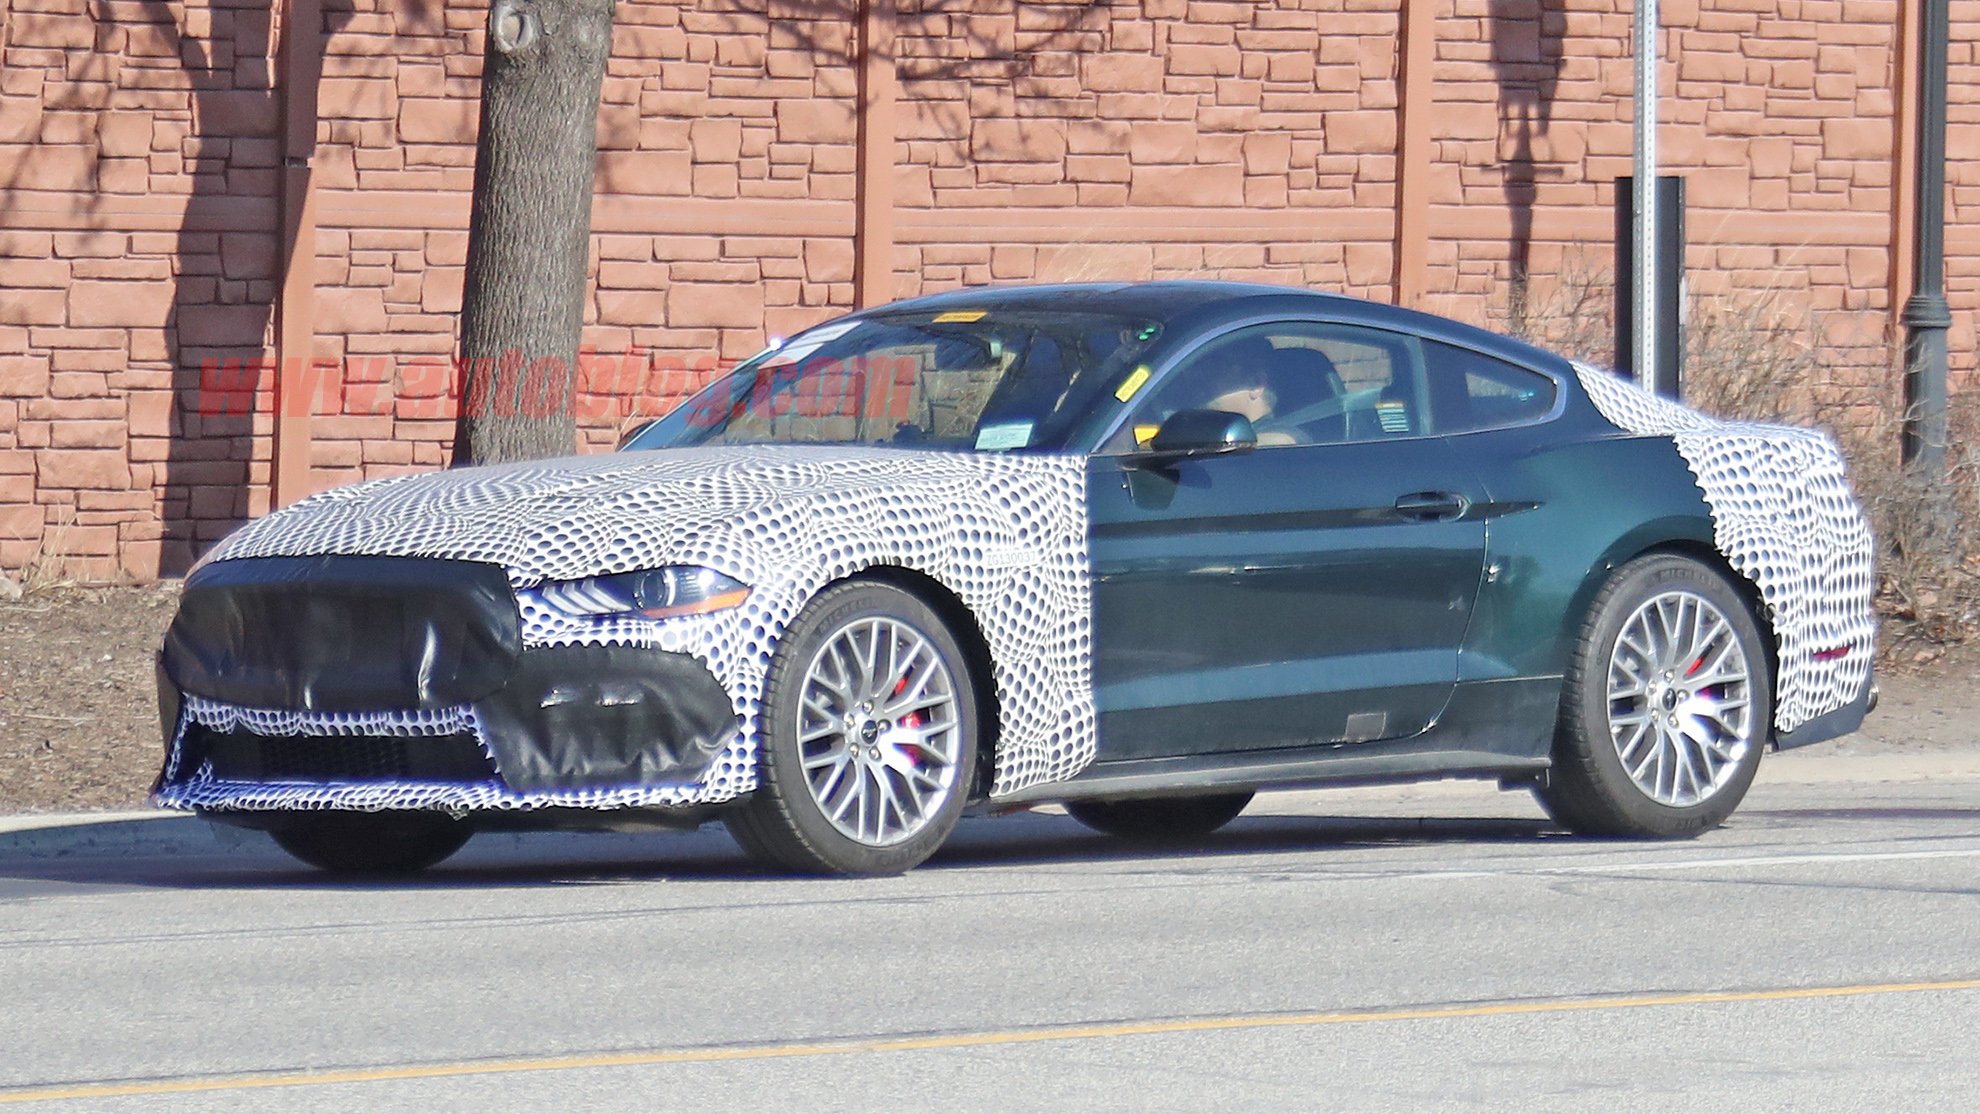 2021 ford mustang vin decoder suggests mach 1 is in